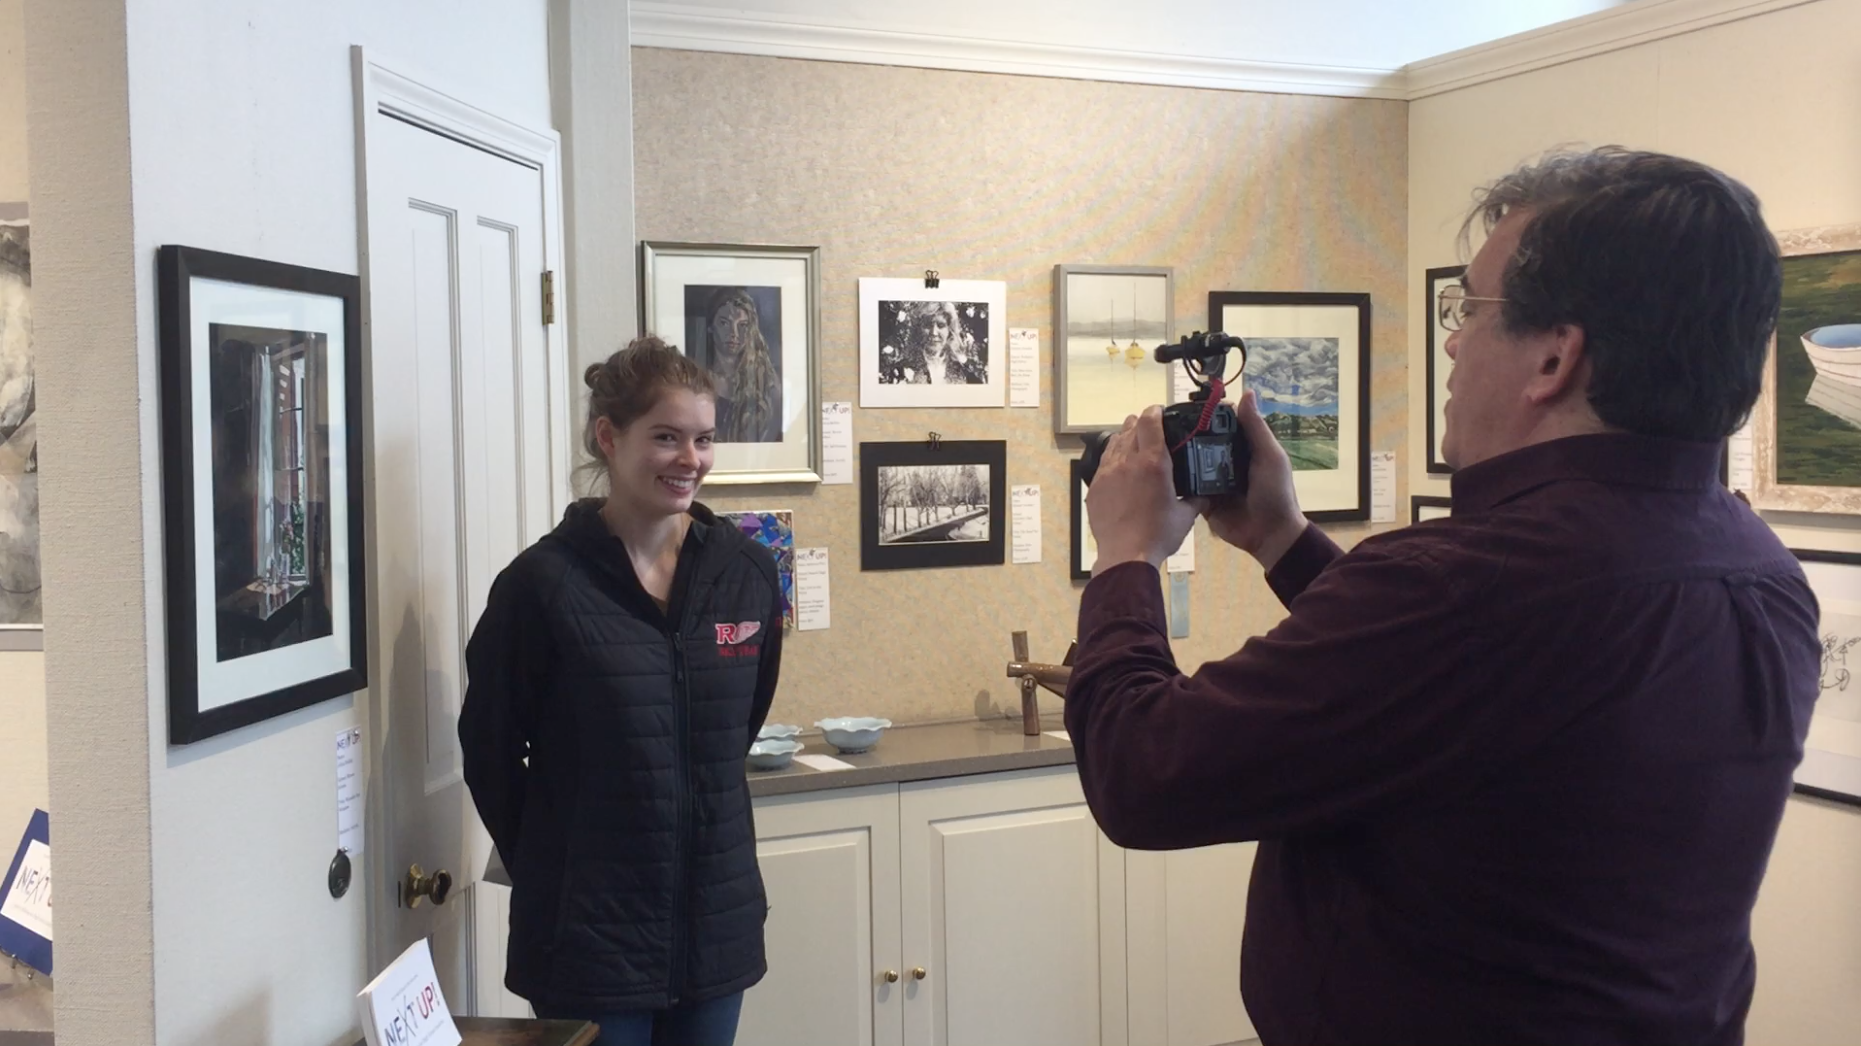 Alicia Bellido being interviewed by Wellesley Media about her First Place award in the Next Up! 2017 juried art exhibition.